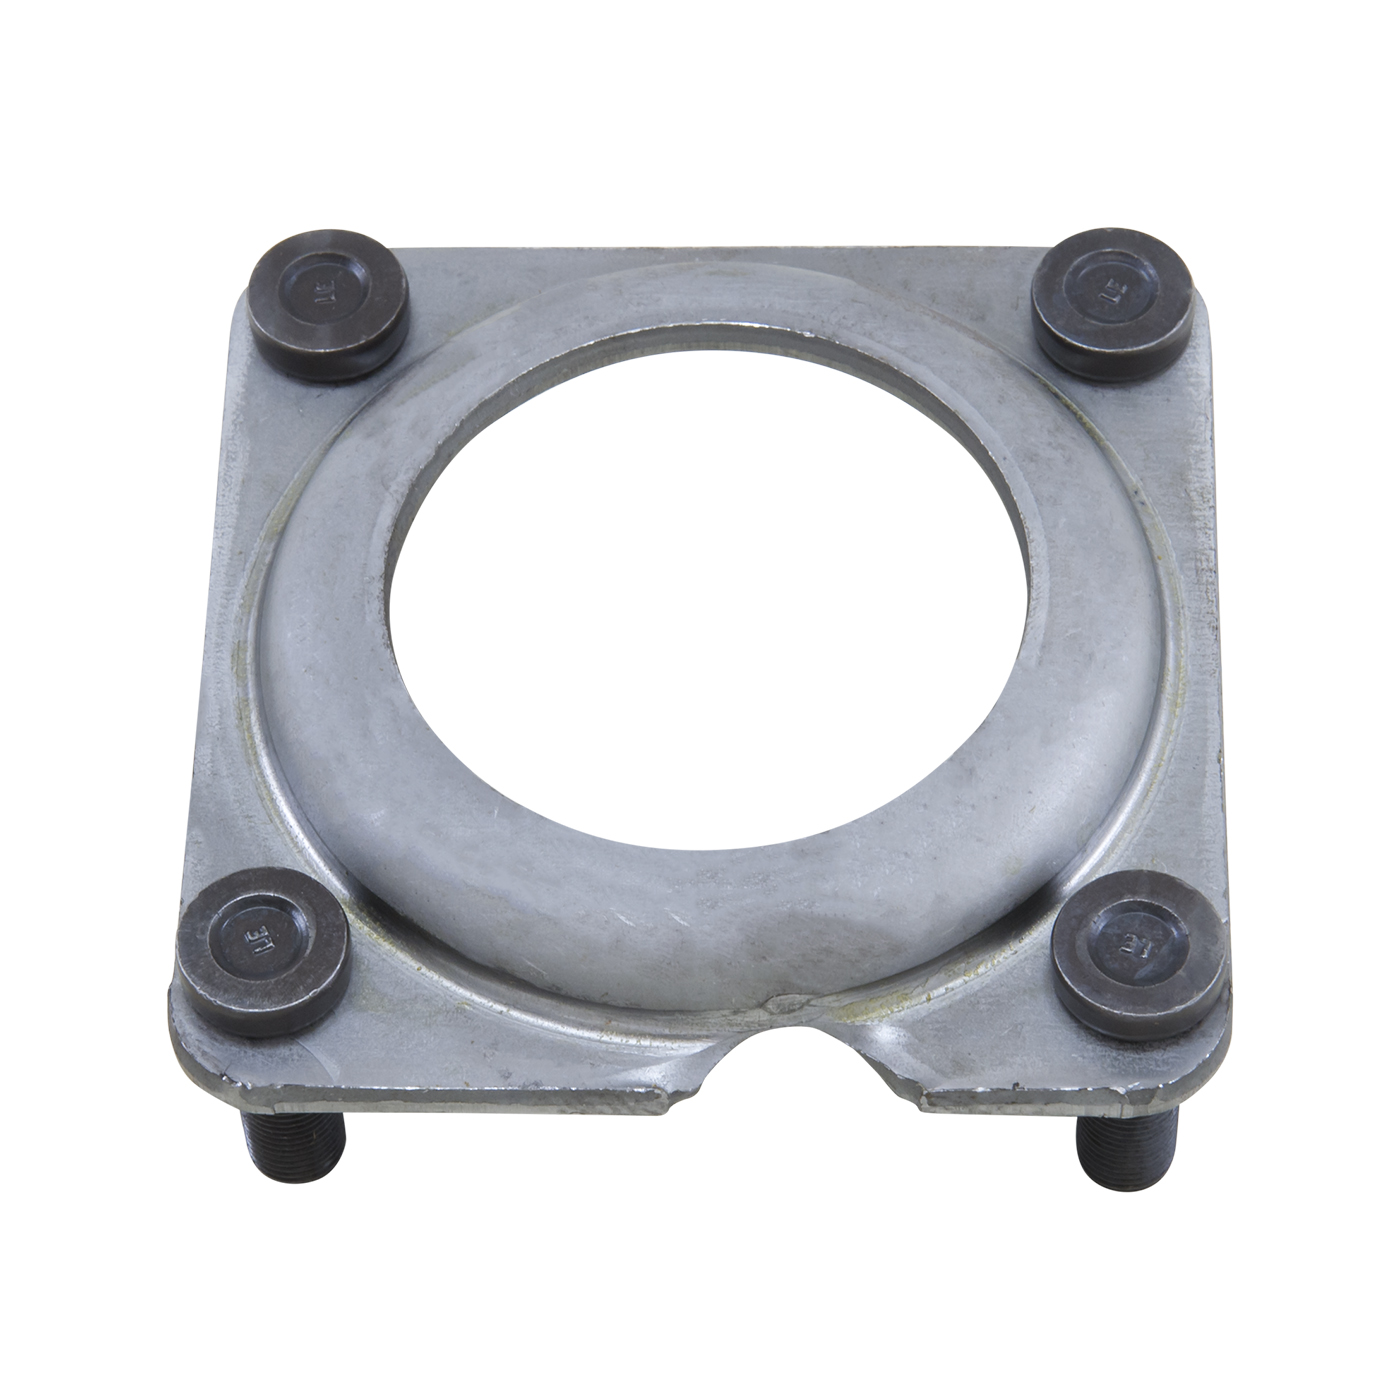 YSPRET-014 - Axle bearing retainer plate for Super 35 rear.